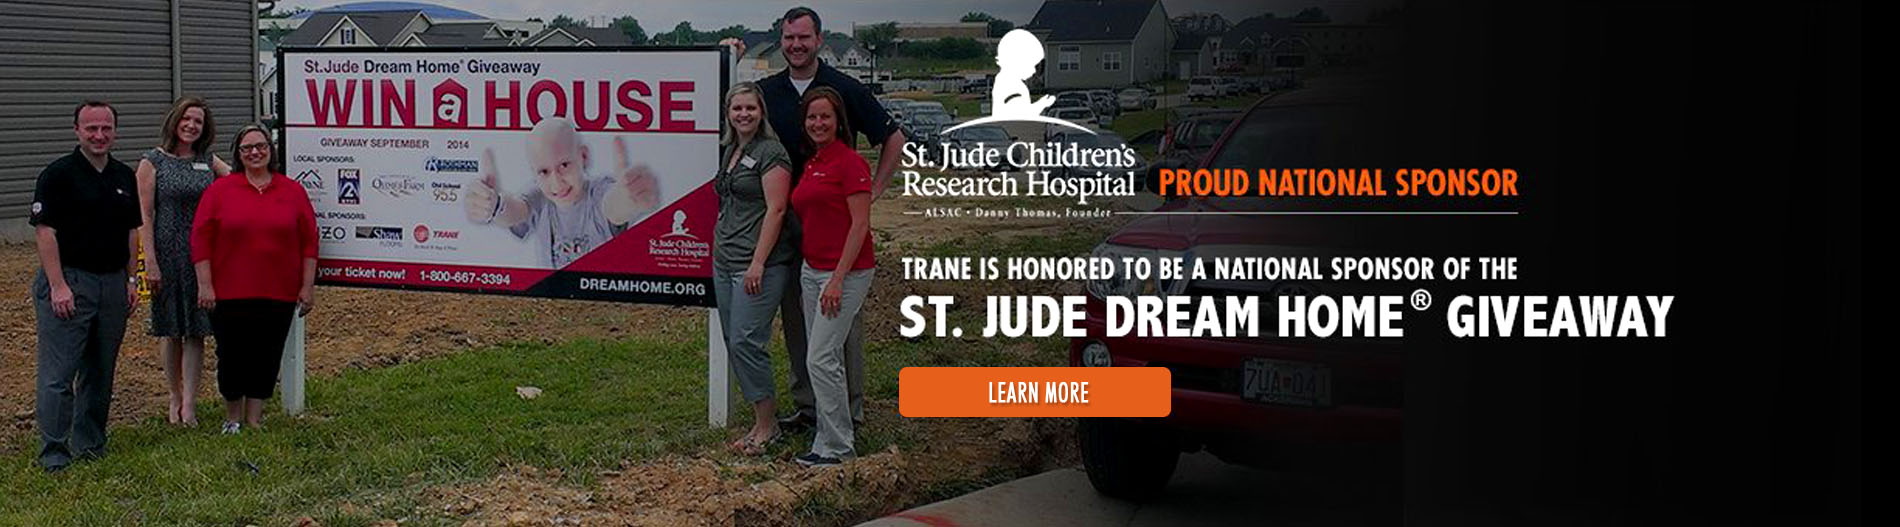 Trane is honored to be a national sponsor of the St. Jude Dream Home Giveaway